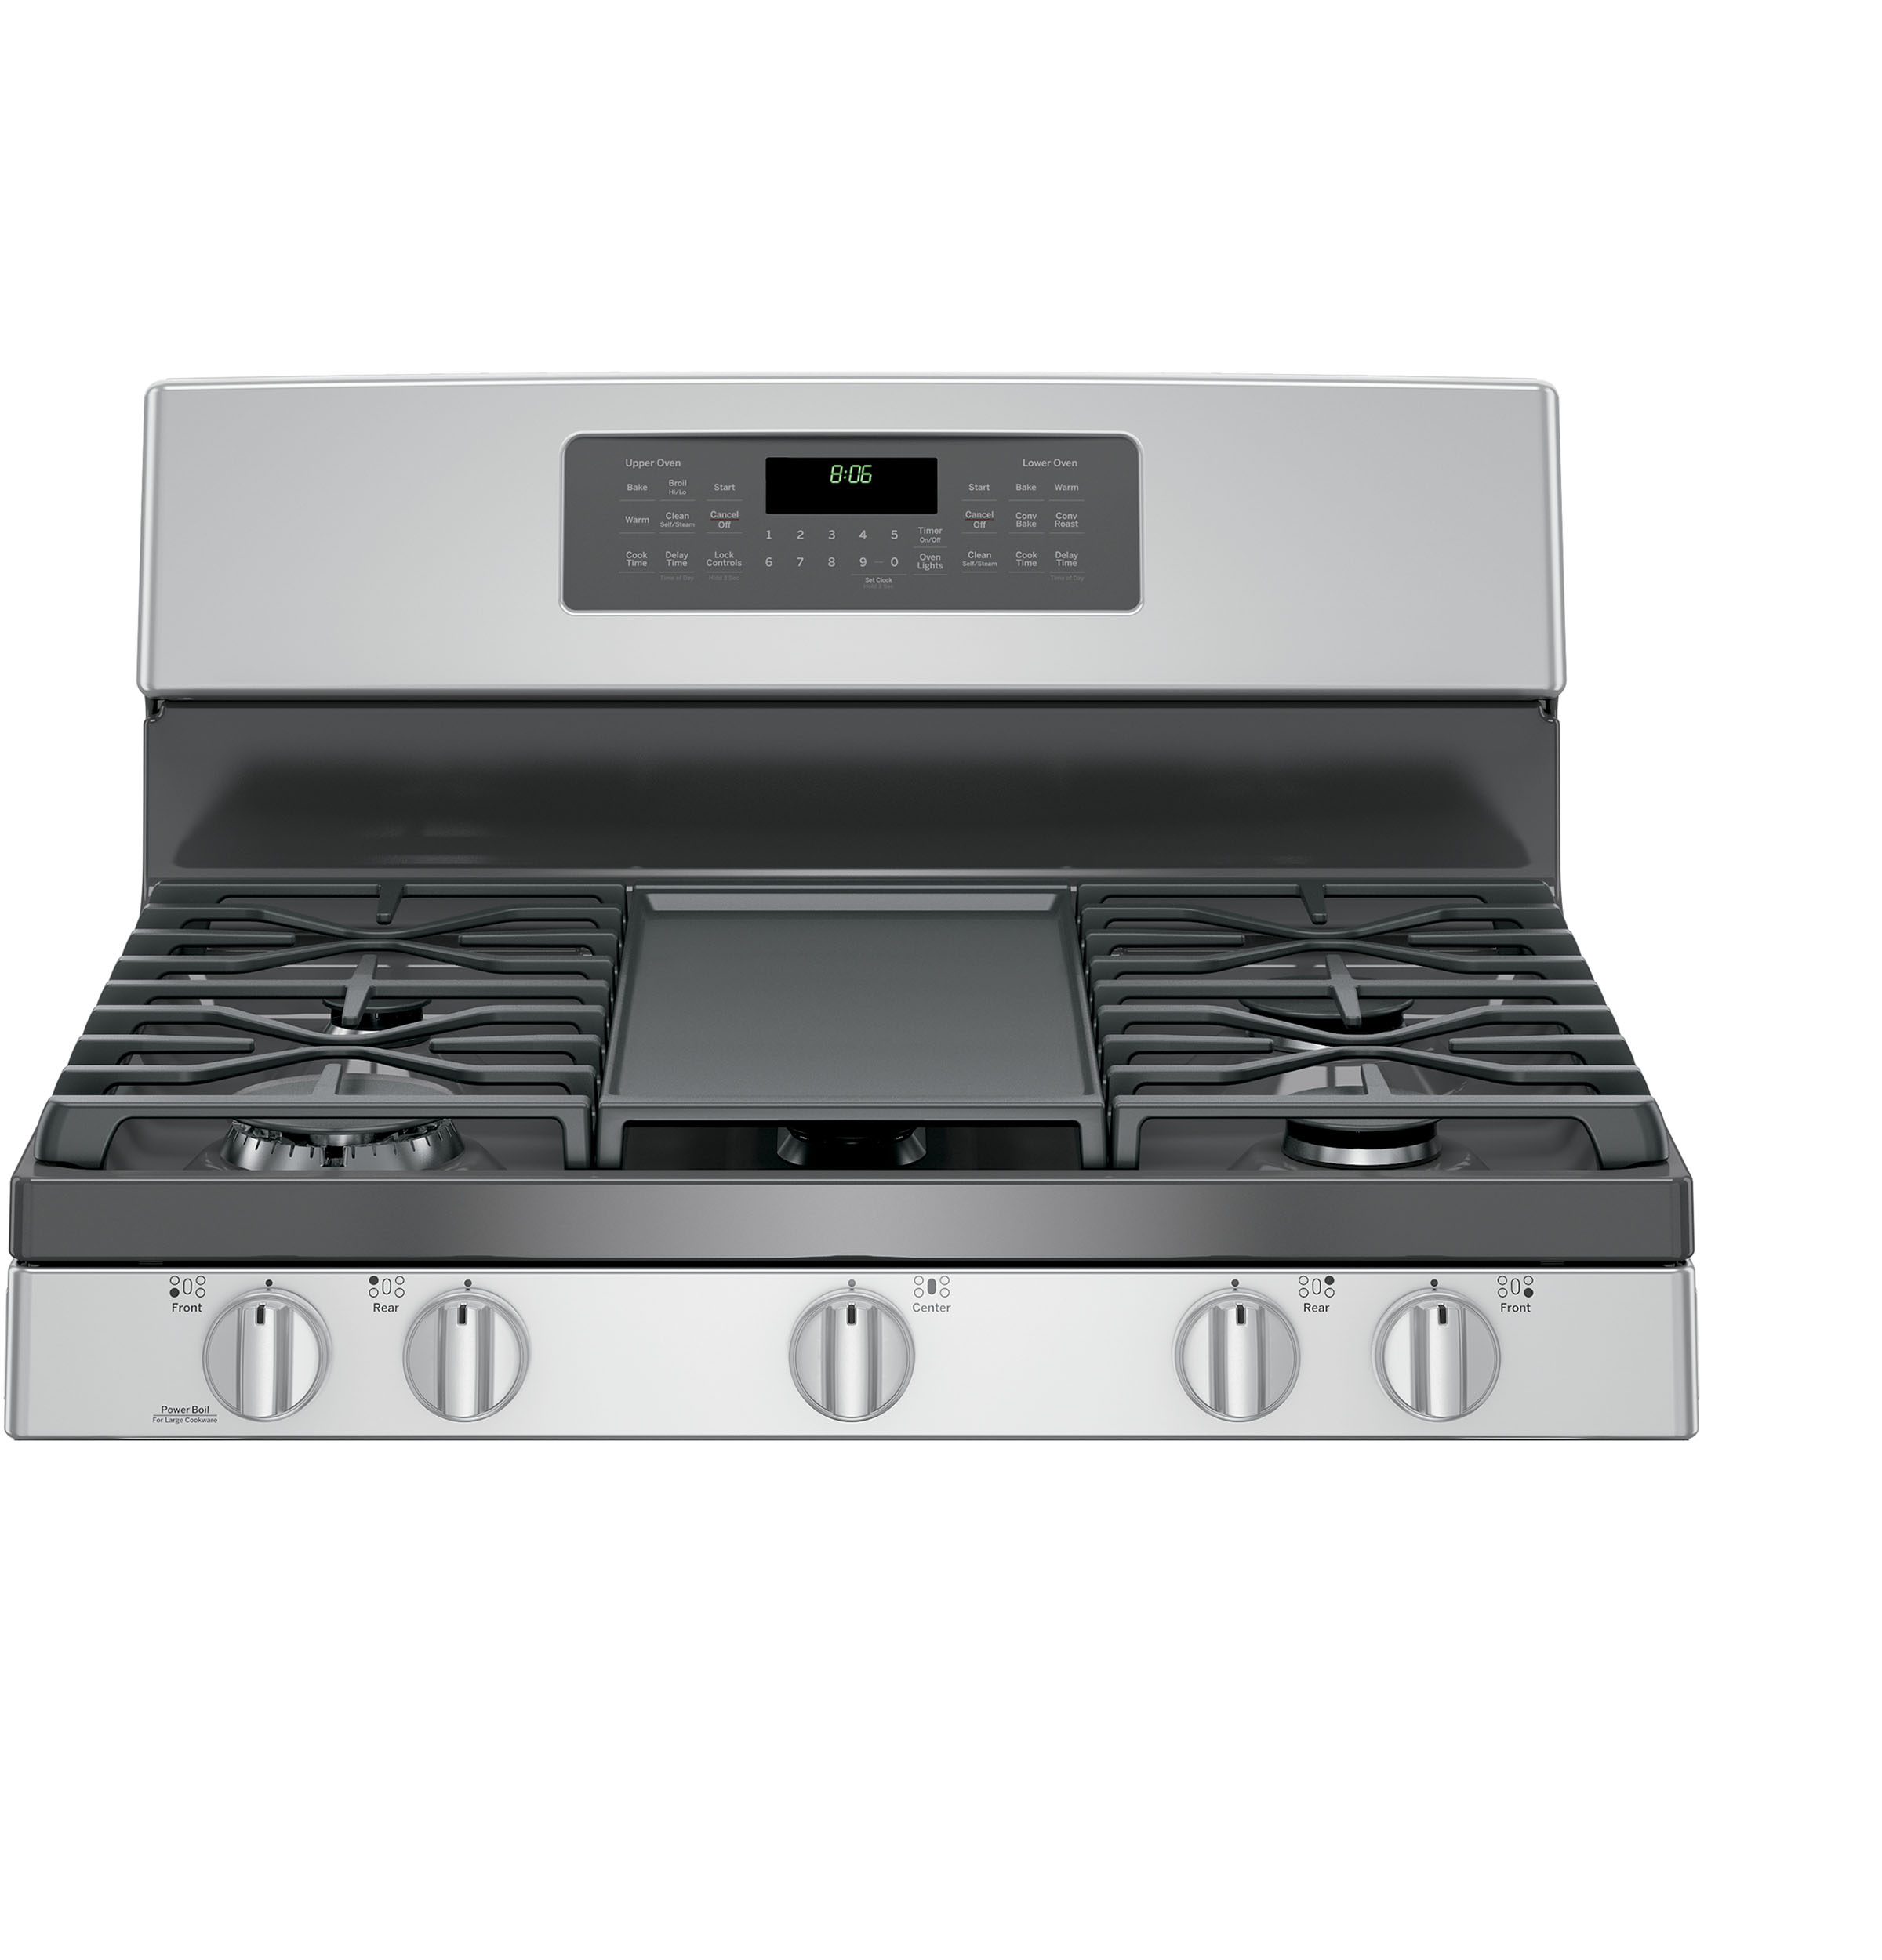 GE Appliances JGB860SEJSS 6.8 cu. ft. Freestanding Gas Double Oven Convection Range - Stainless Steel